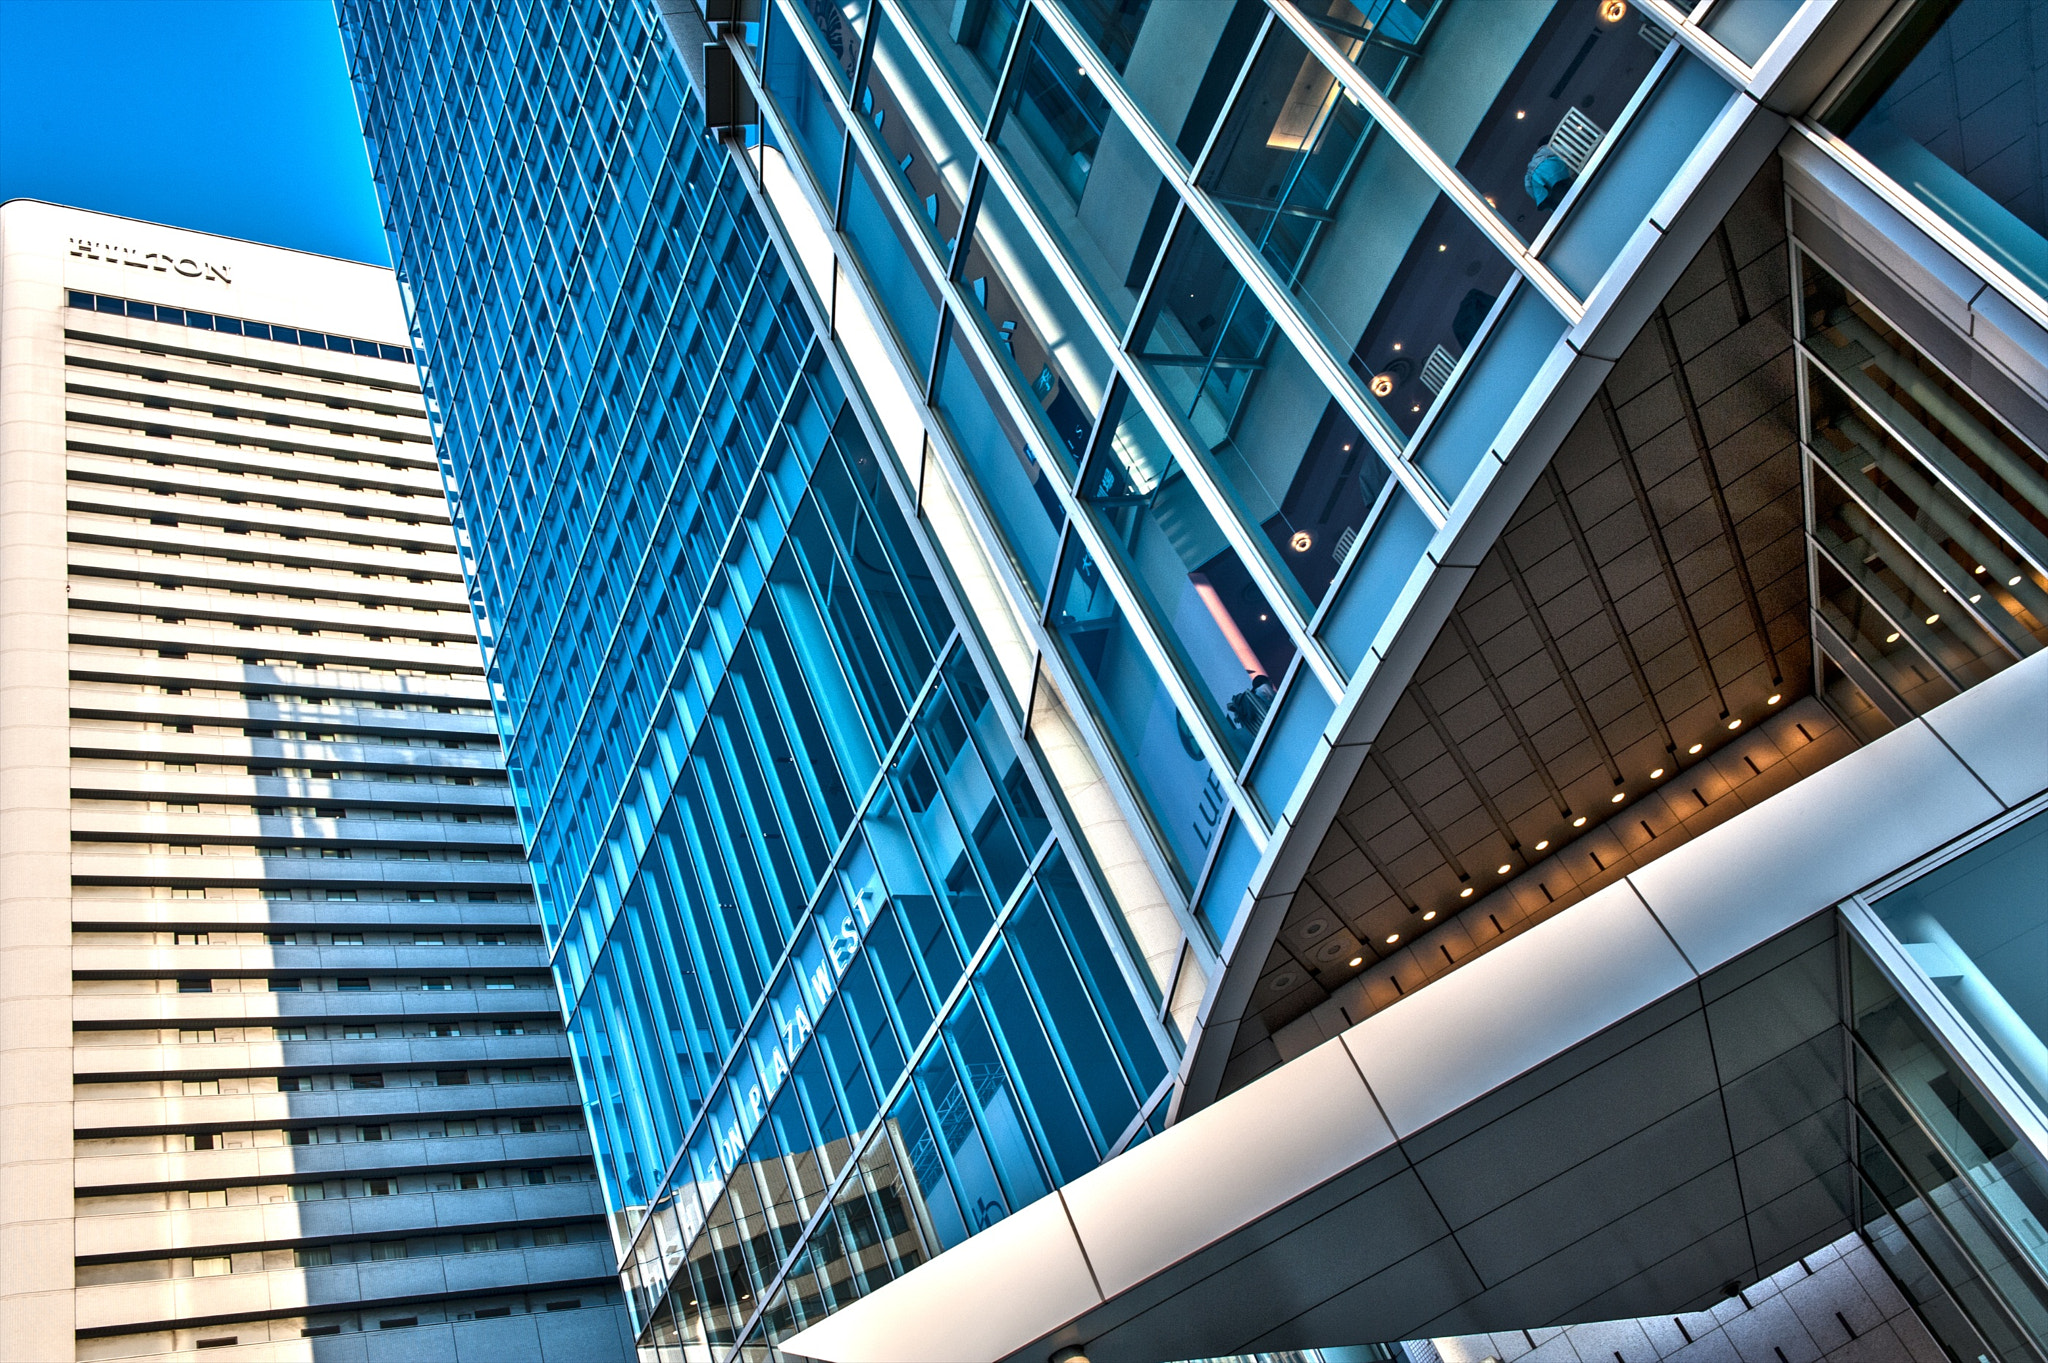 Photograph Hilton Buildings Osaka by hugh dornan on 500px